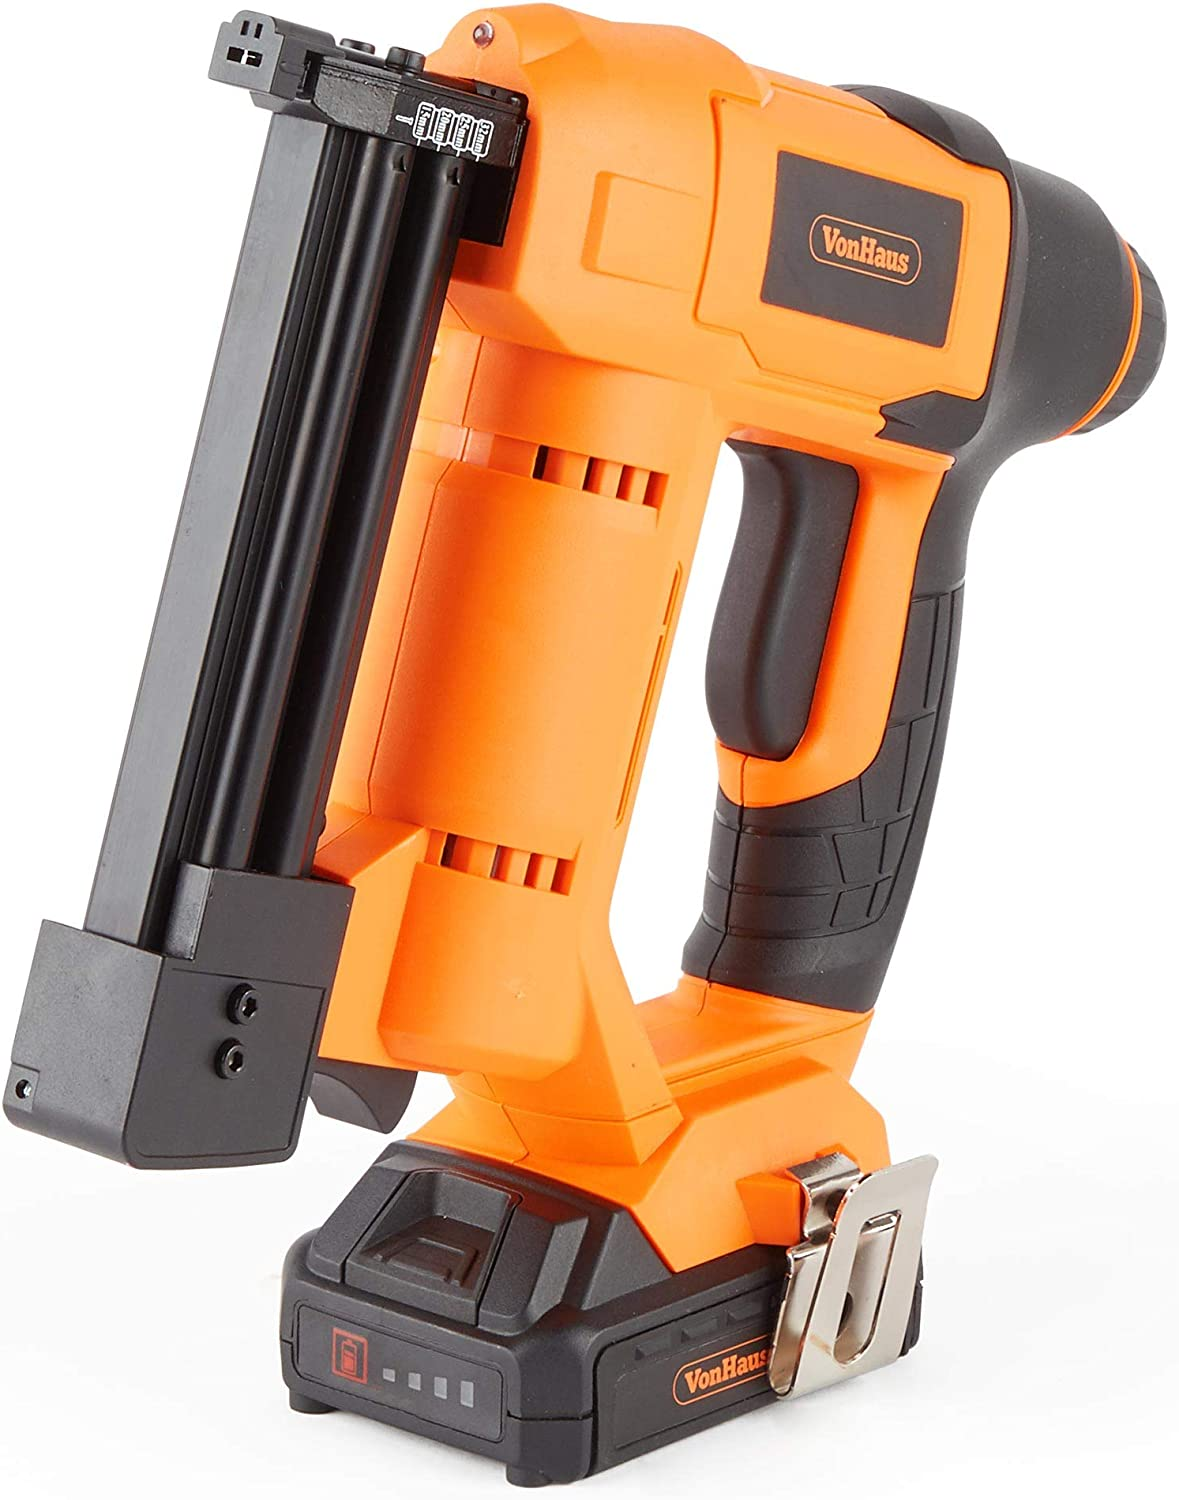 VonHaus 18v Cordless Nail Gun Brad Nailer – Li-ion Battery Operated Ergonomic Medium Duty For Fabrics, Upholstery, Underlay, Carpeting, Roofing Crafts Model No. 9100100